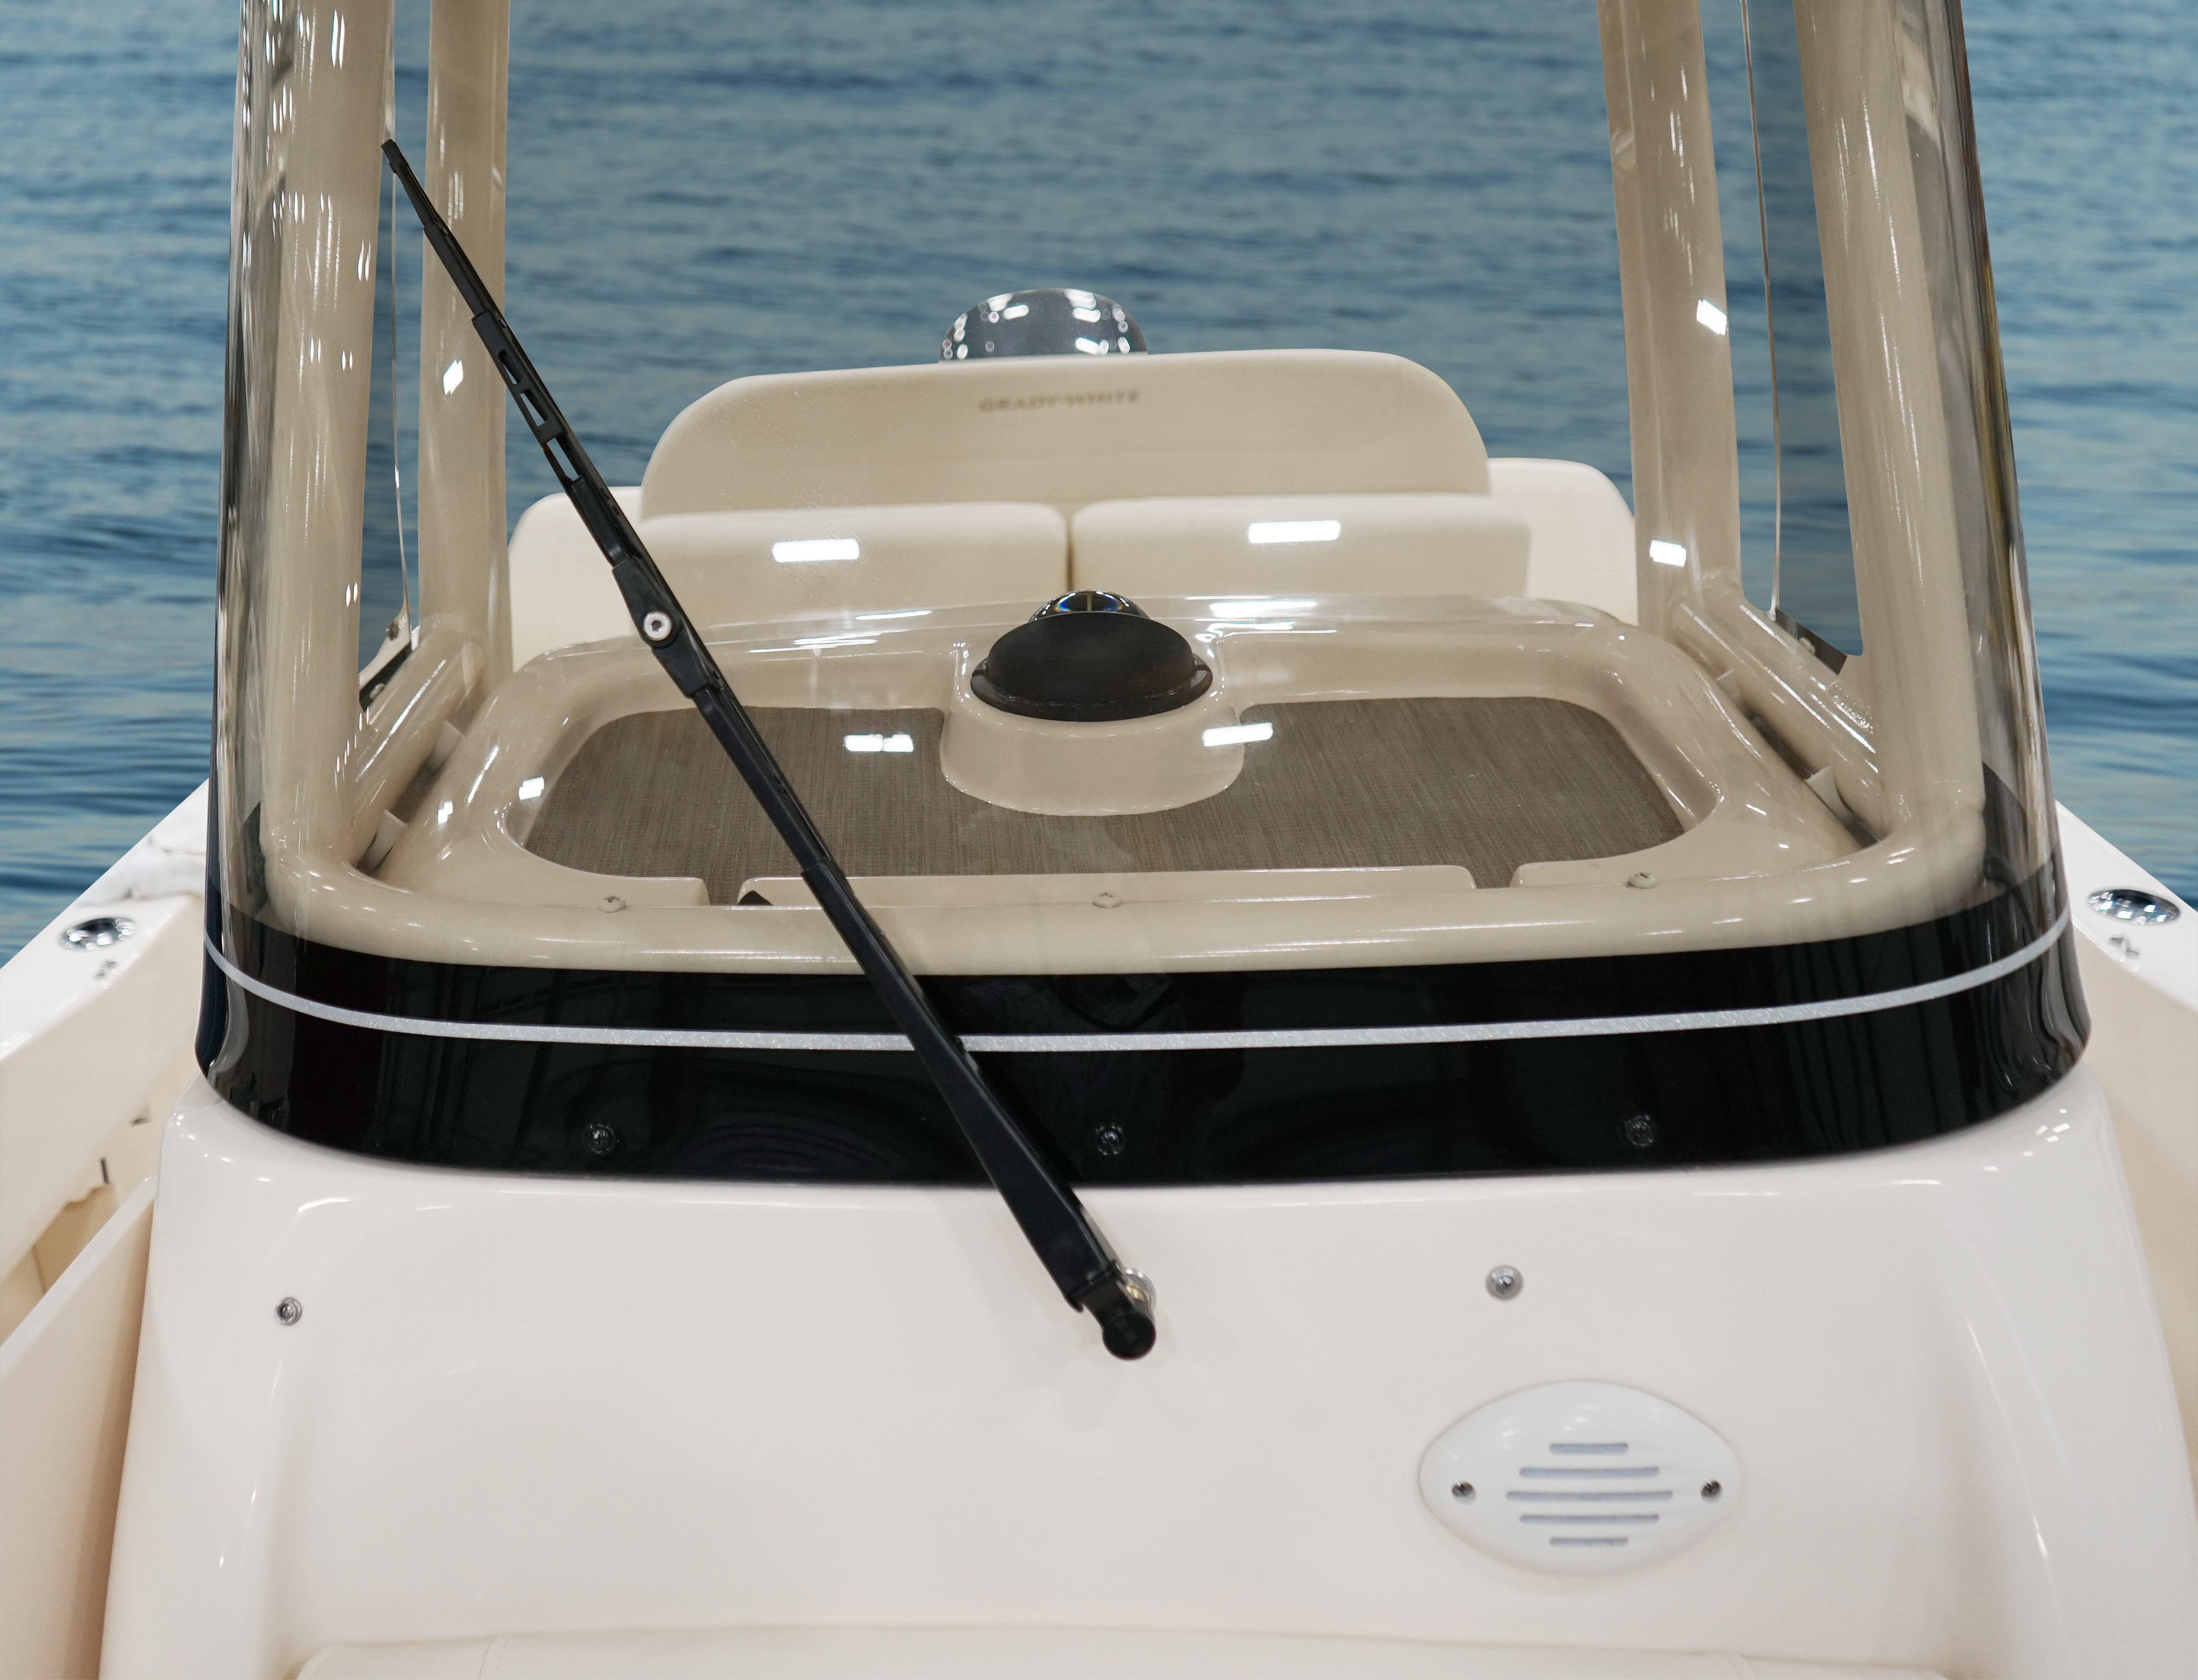 Fisherman 216 center console windshield wiper